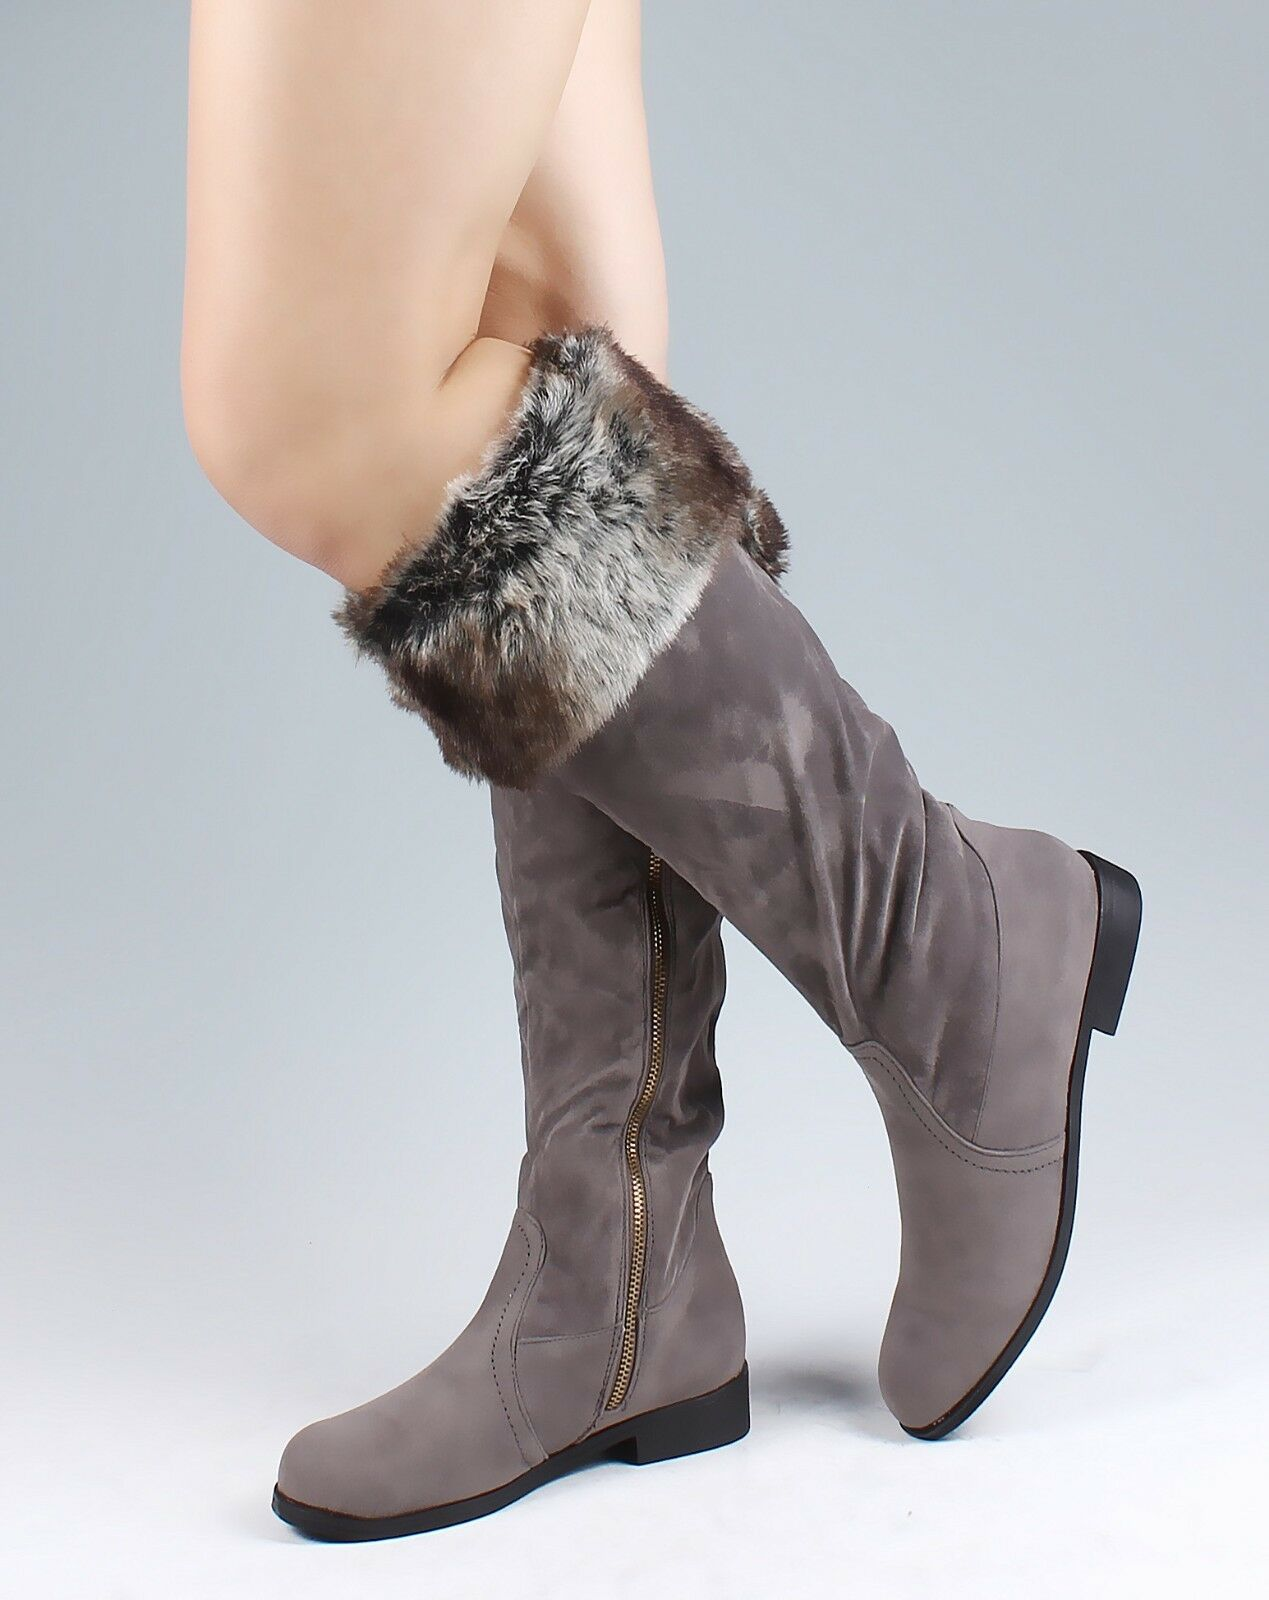 Gray Color Zip Open Faux Suede Fur Womens Knee High Boots Shoes US Size 5.5